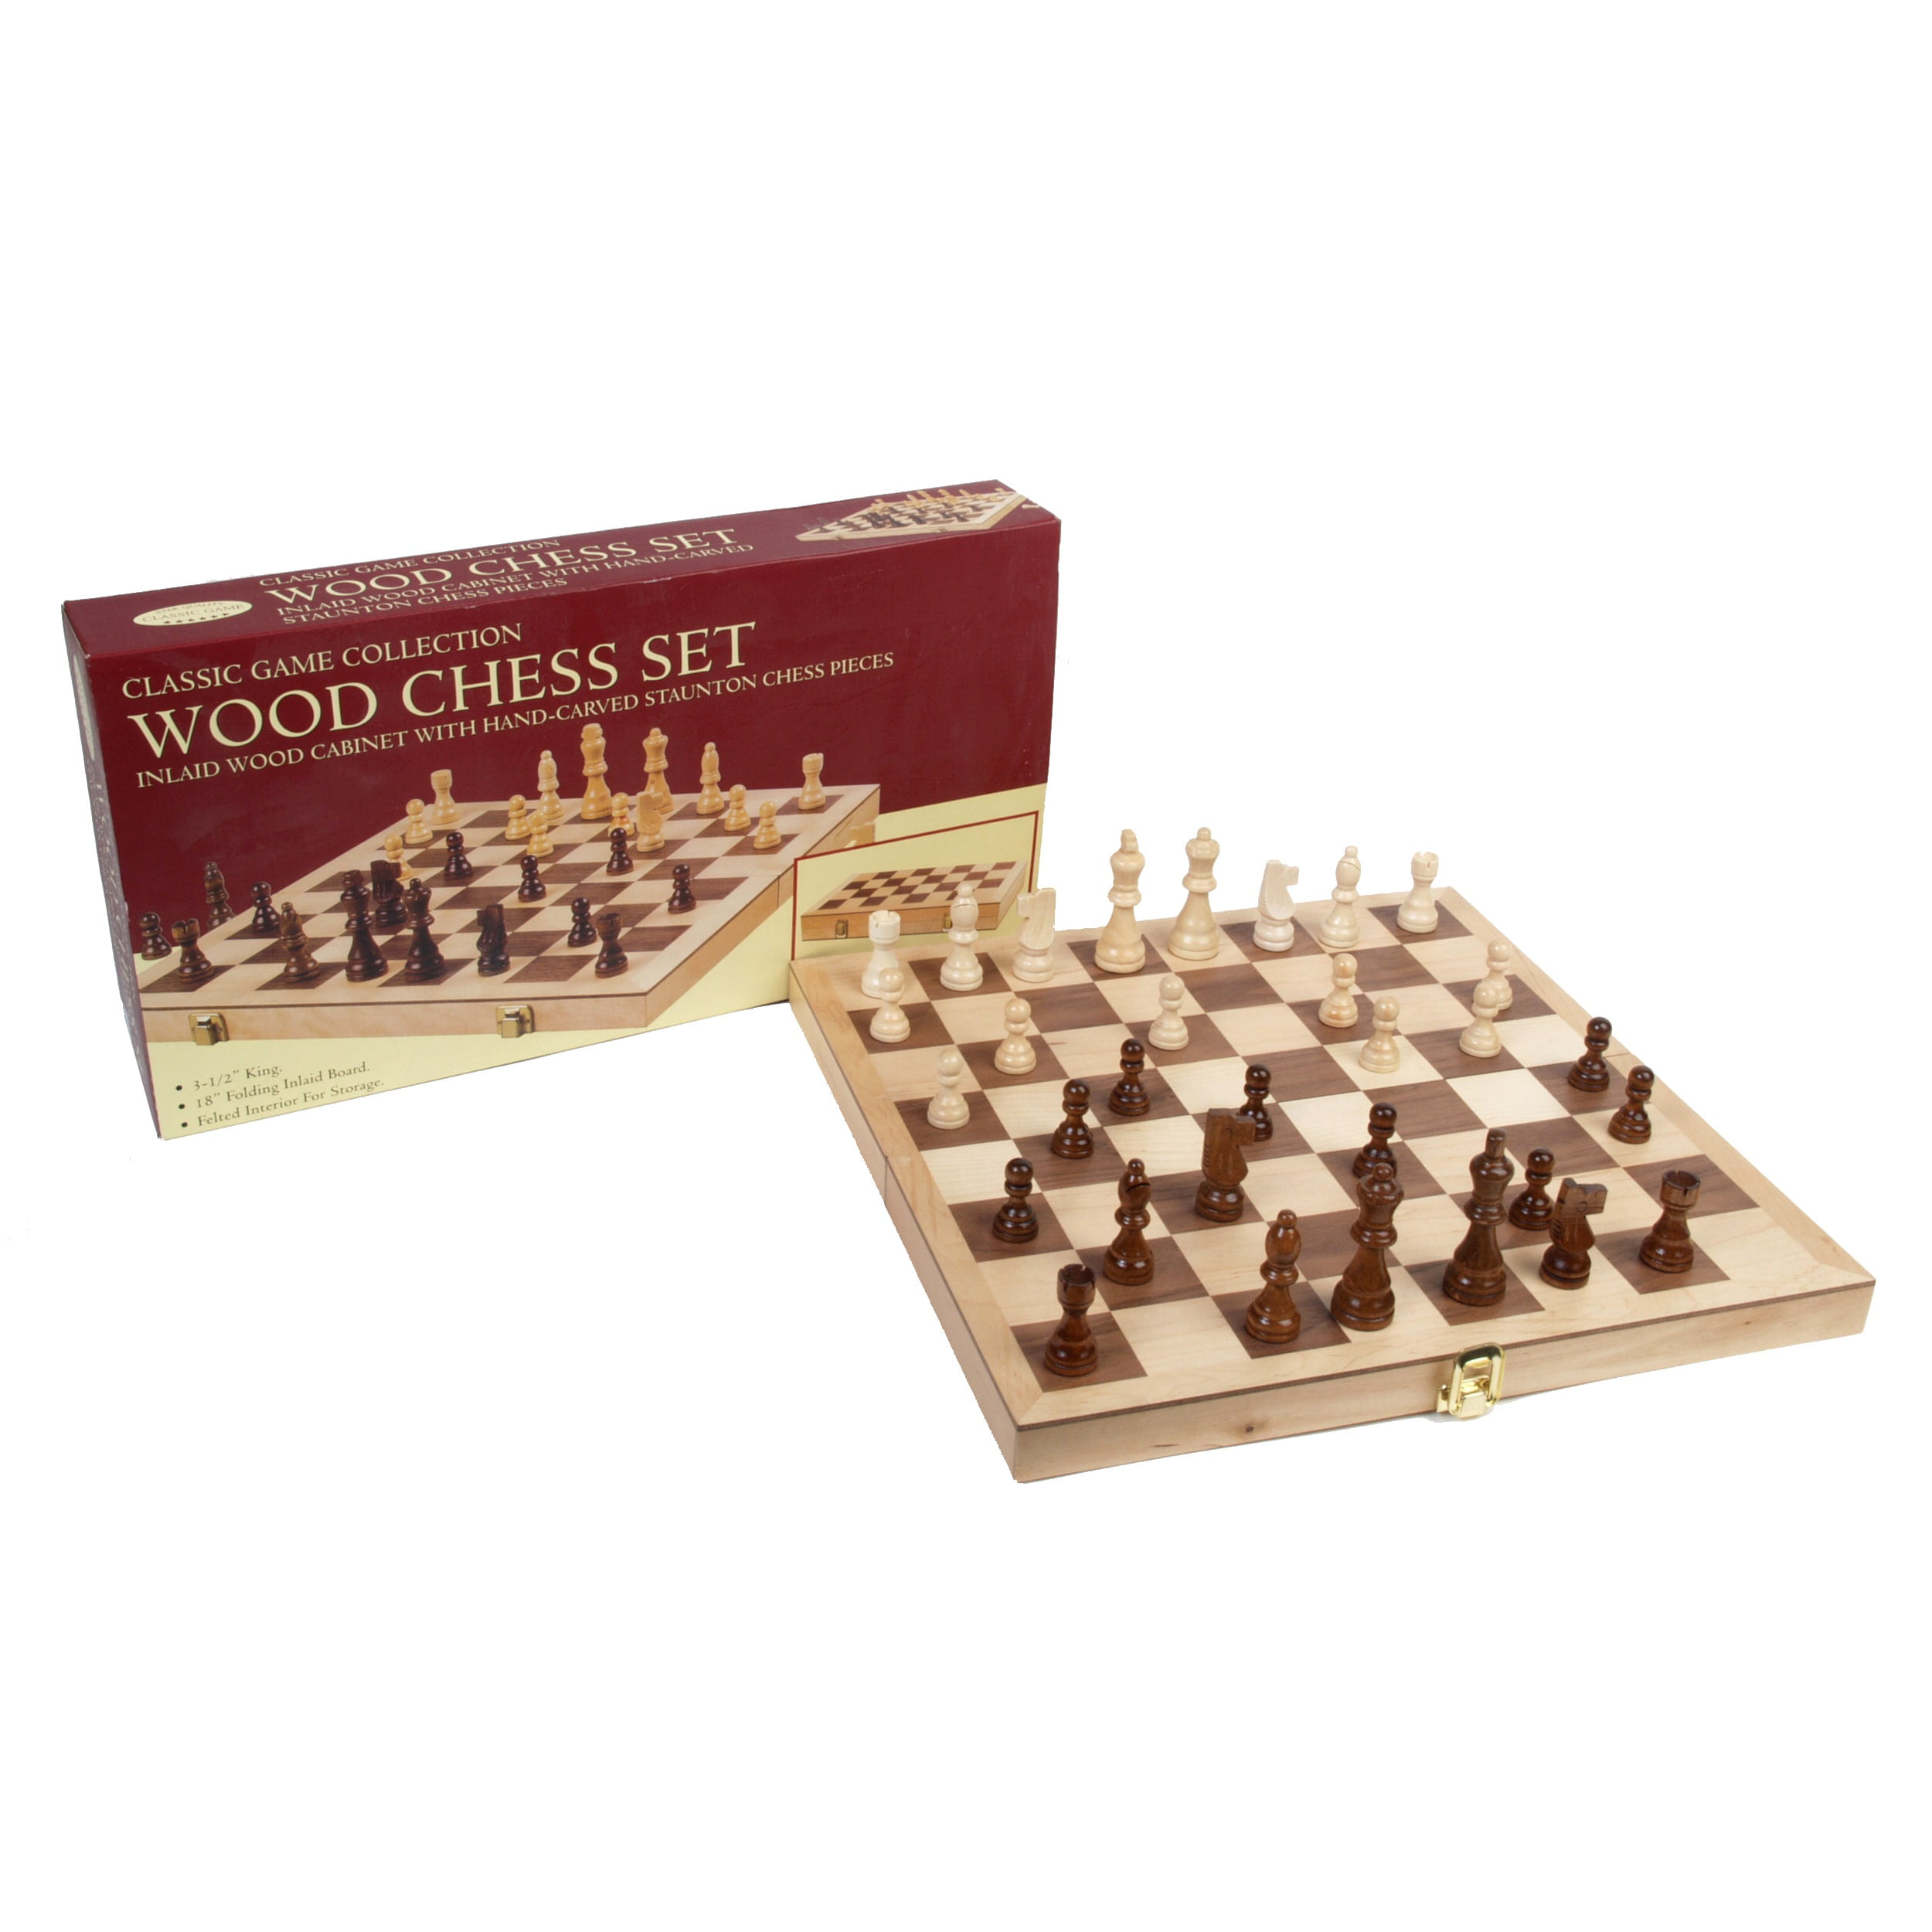 Good Classic Games Collection Inlaid Wood Chess Set   Walmart.com